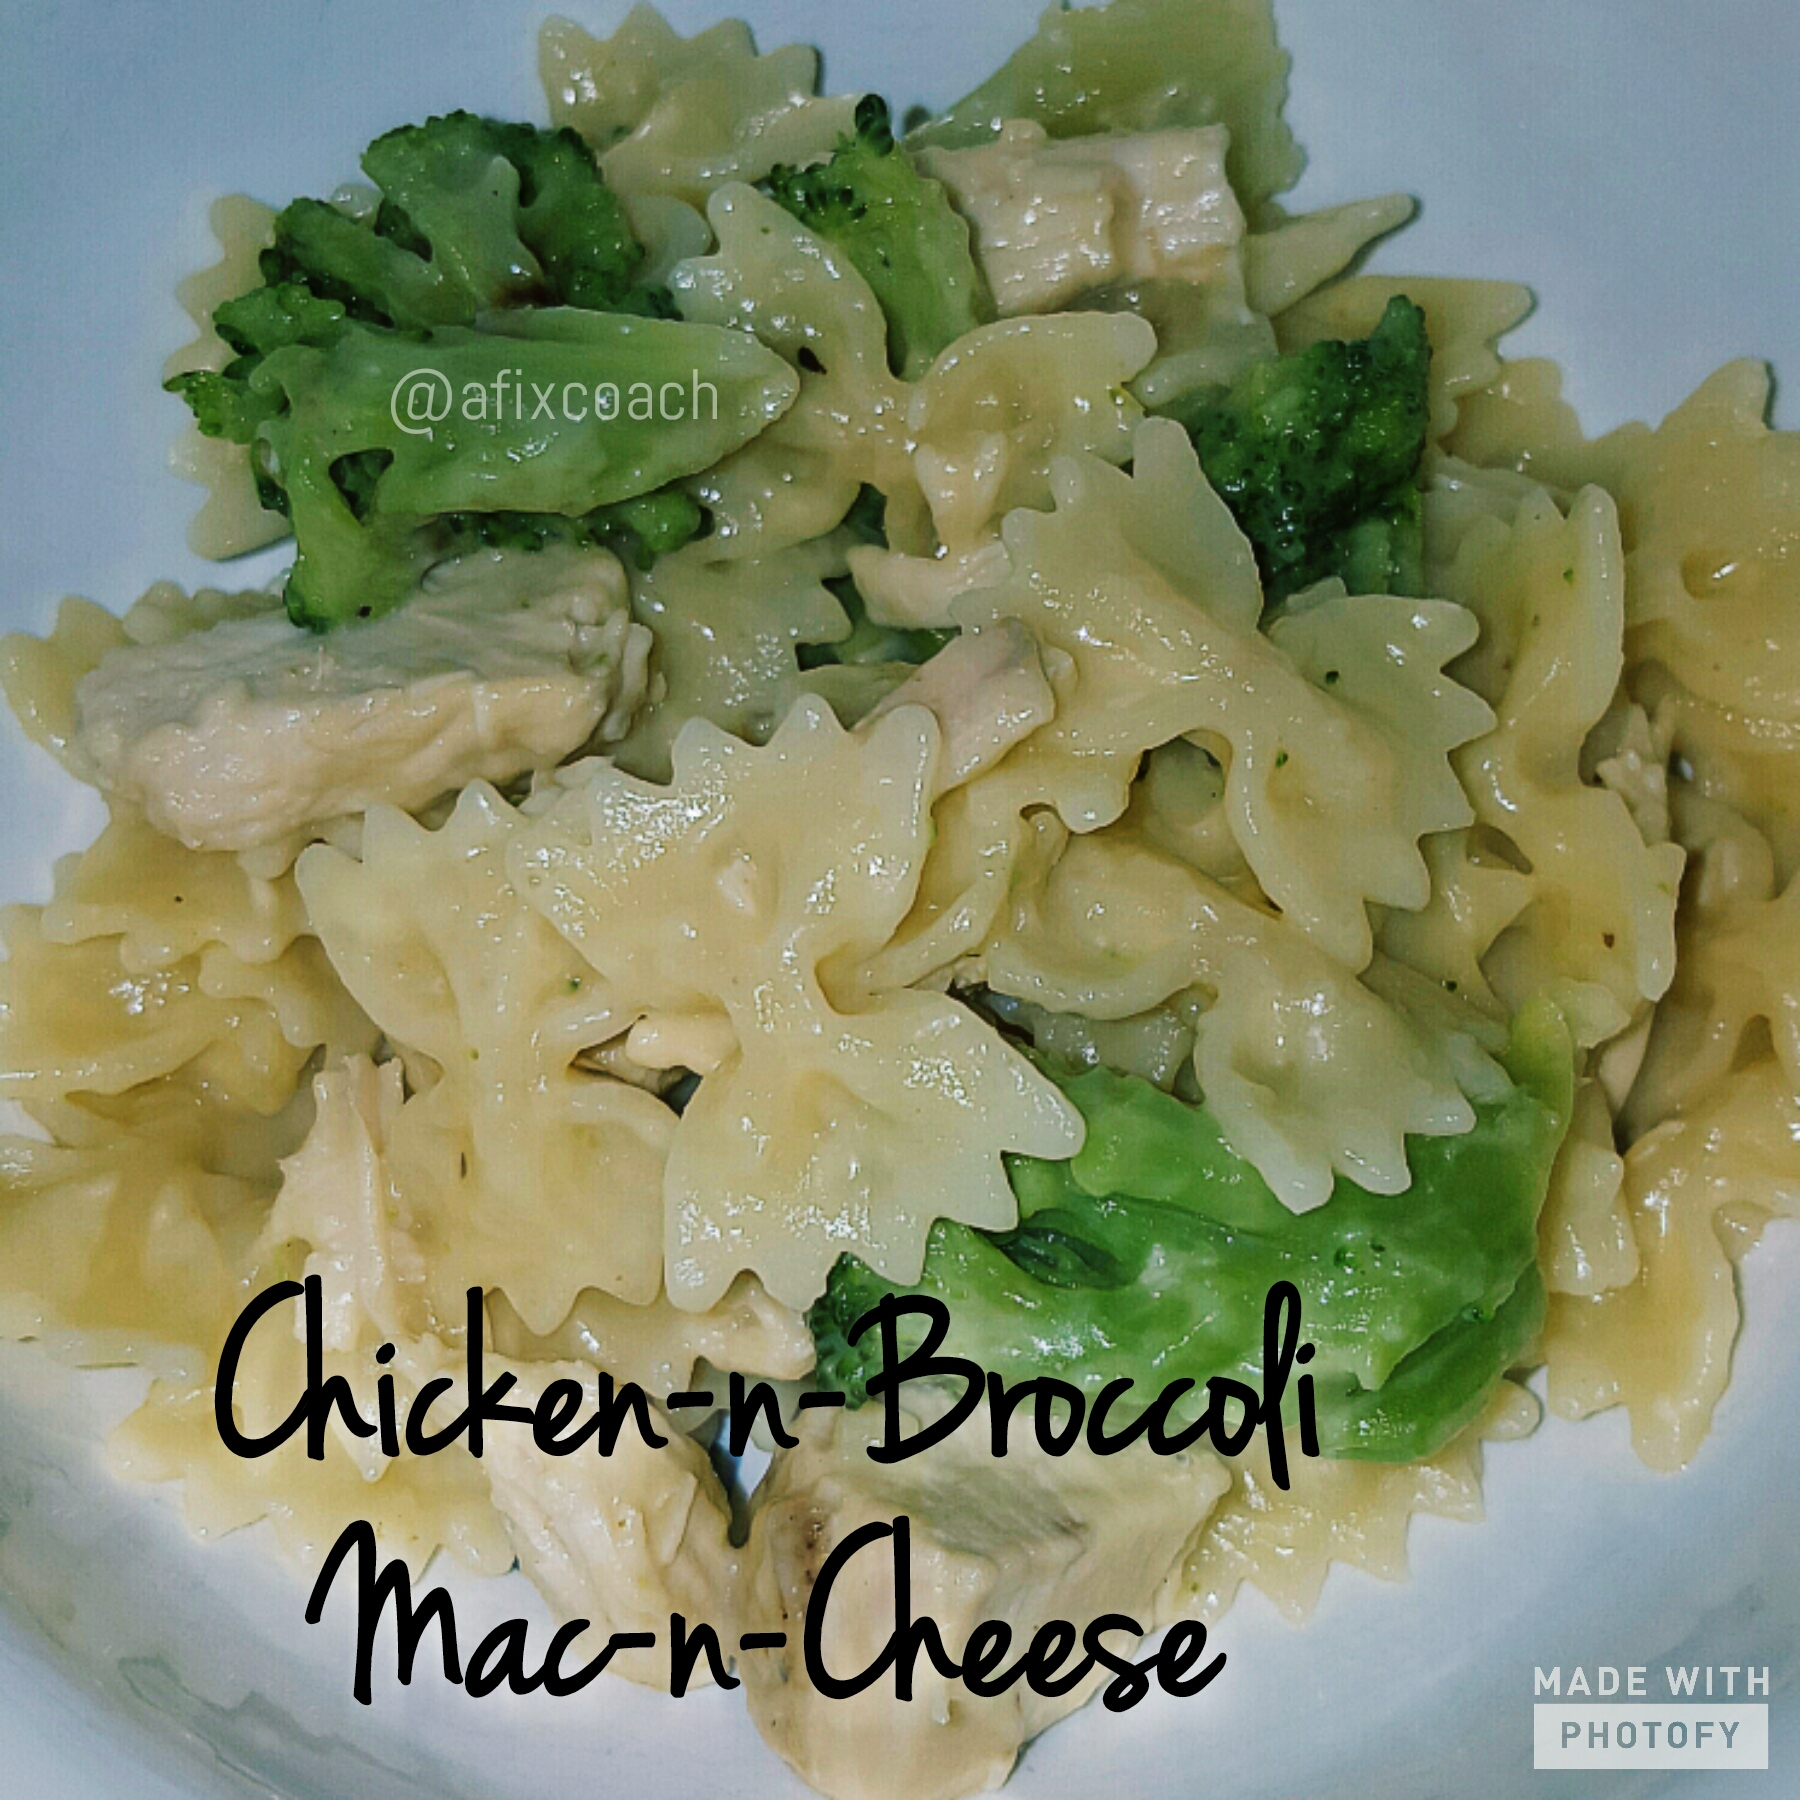 Chicken & Broccoli Mac-n-Cheese